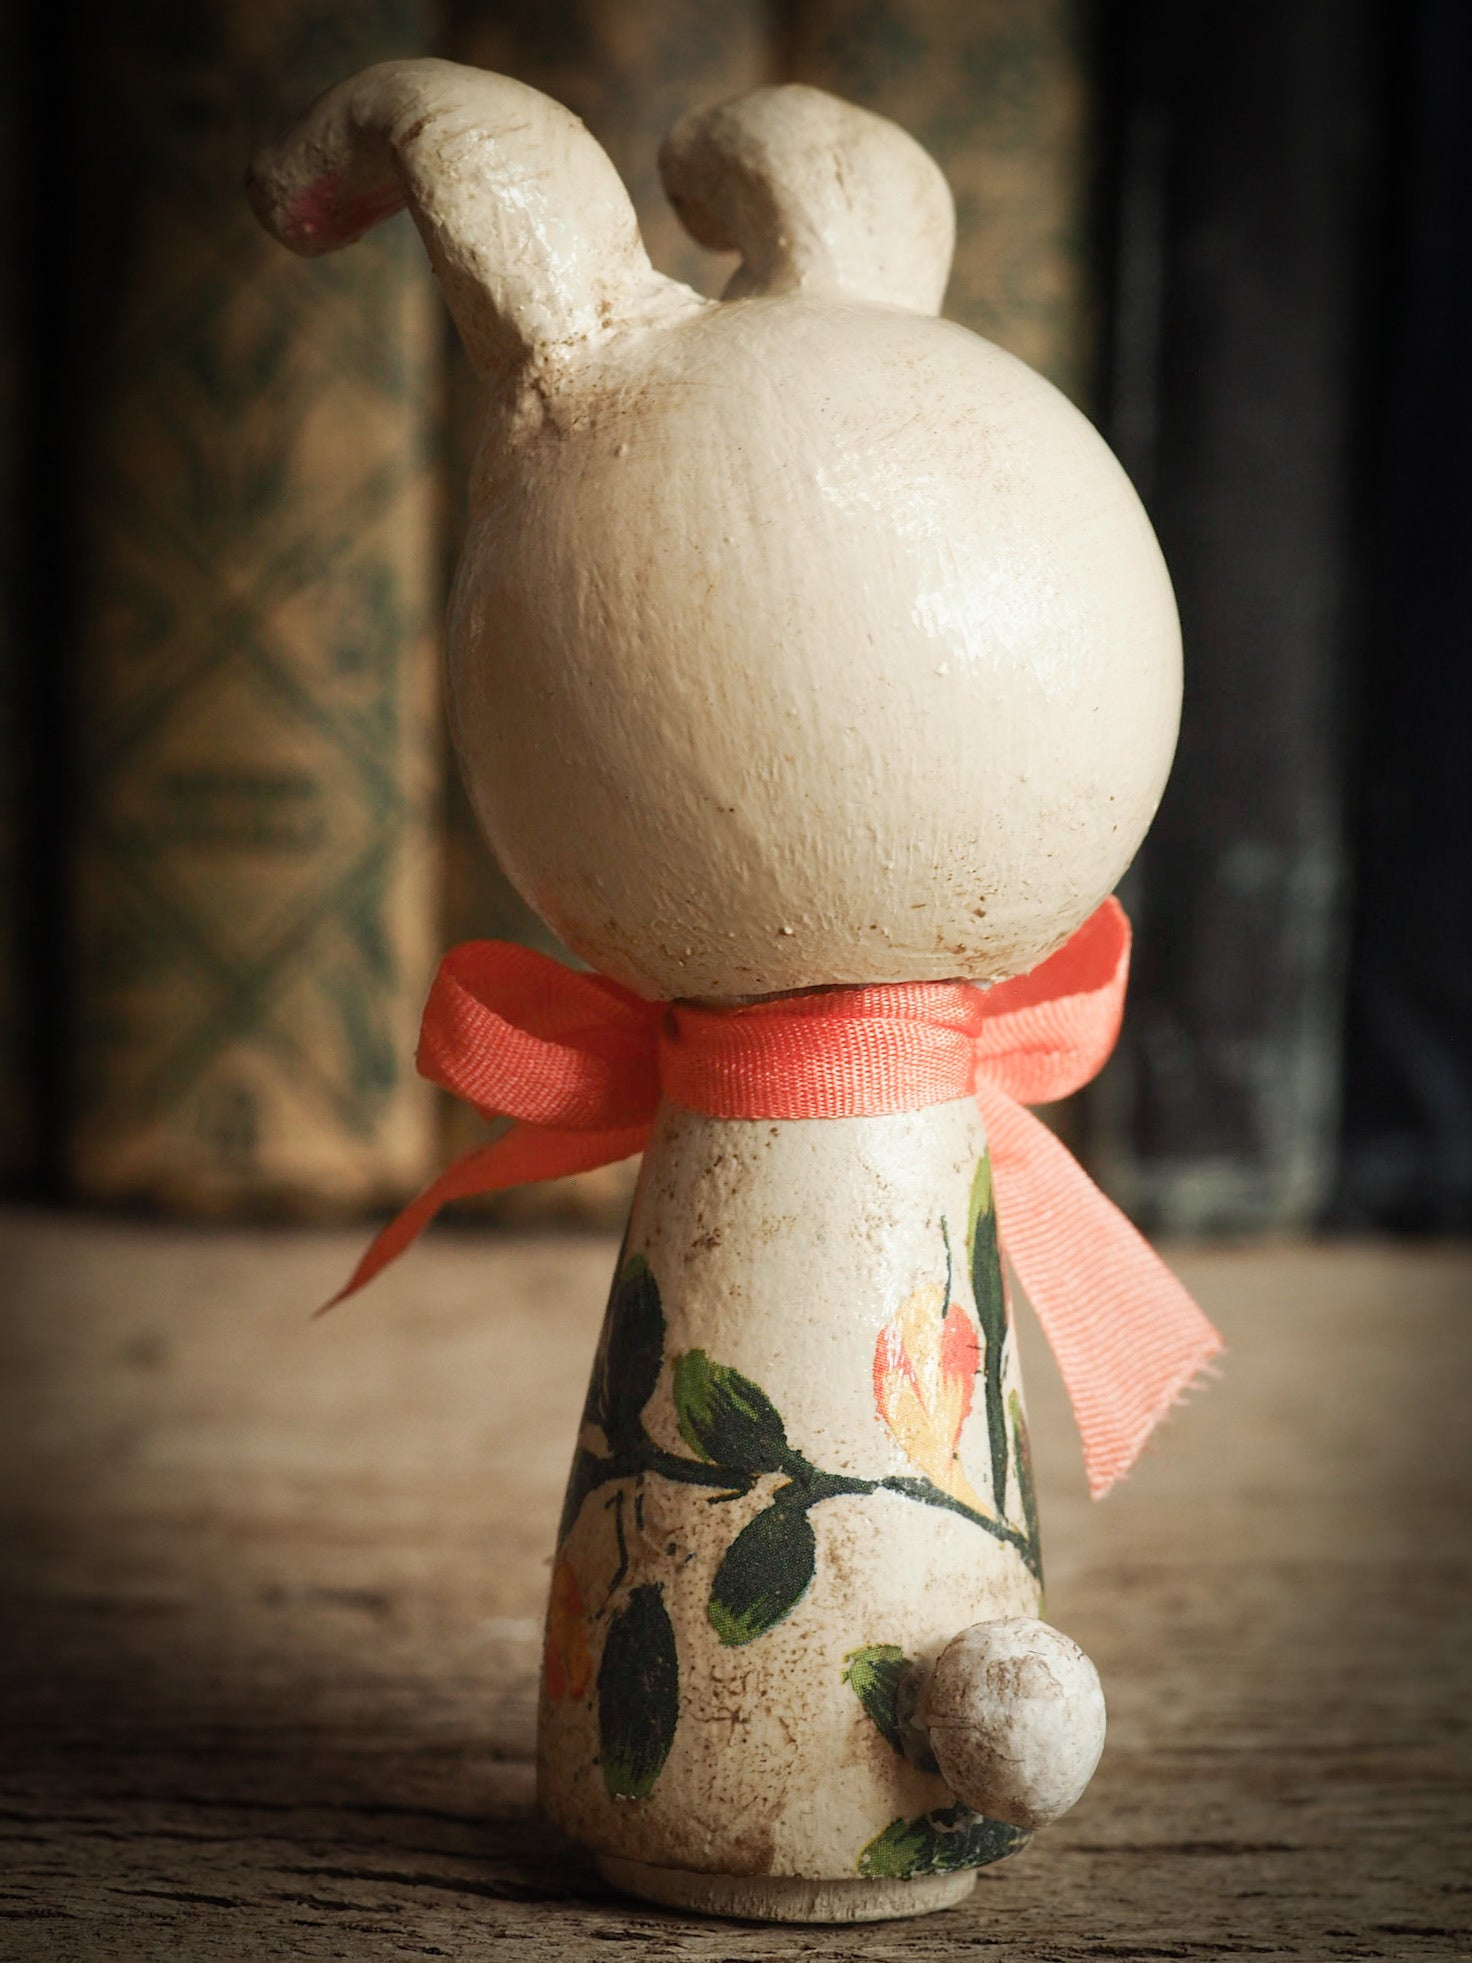 EASTER BUNNY KOKESHI DOLL: CLOUDYHOP